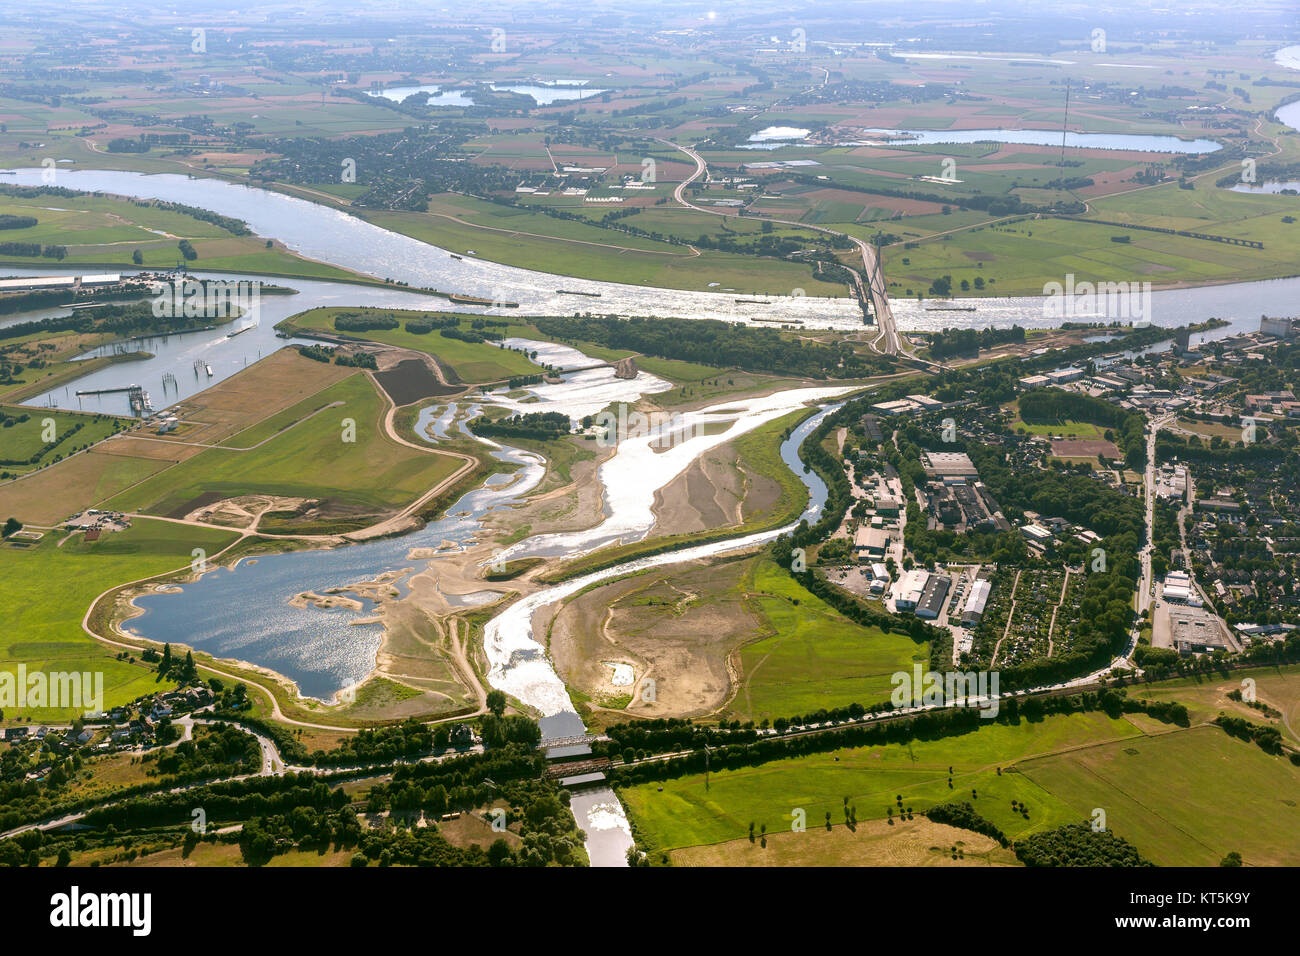 Rebuilding Lippe estuary in the Rhine at Wesel, Lippe meanders, reflection, estuary and influence Wesel-Datteln - Stock Image